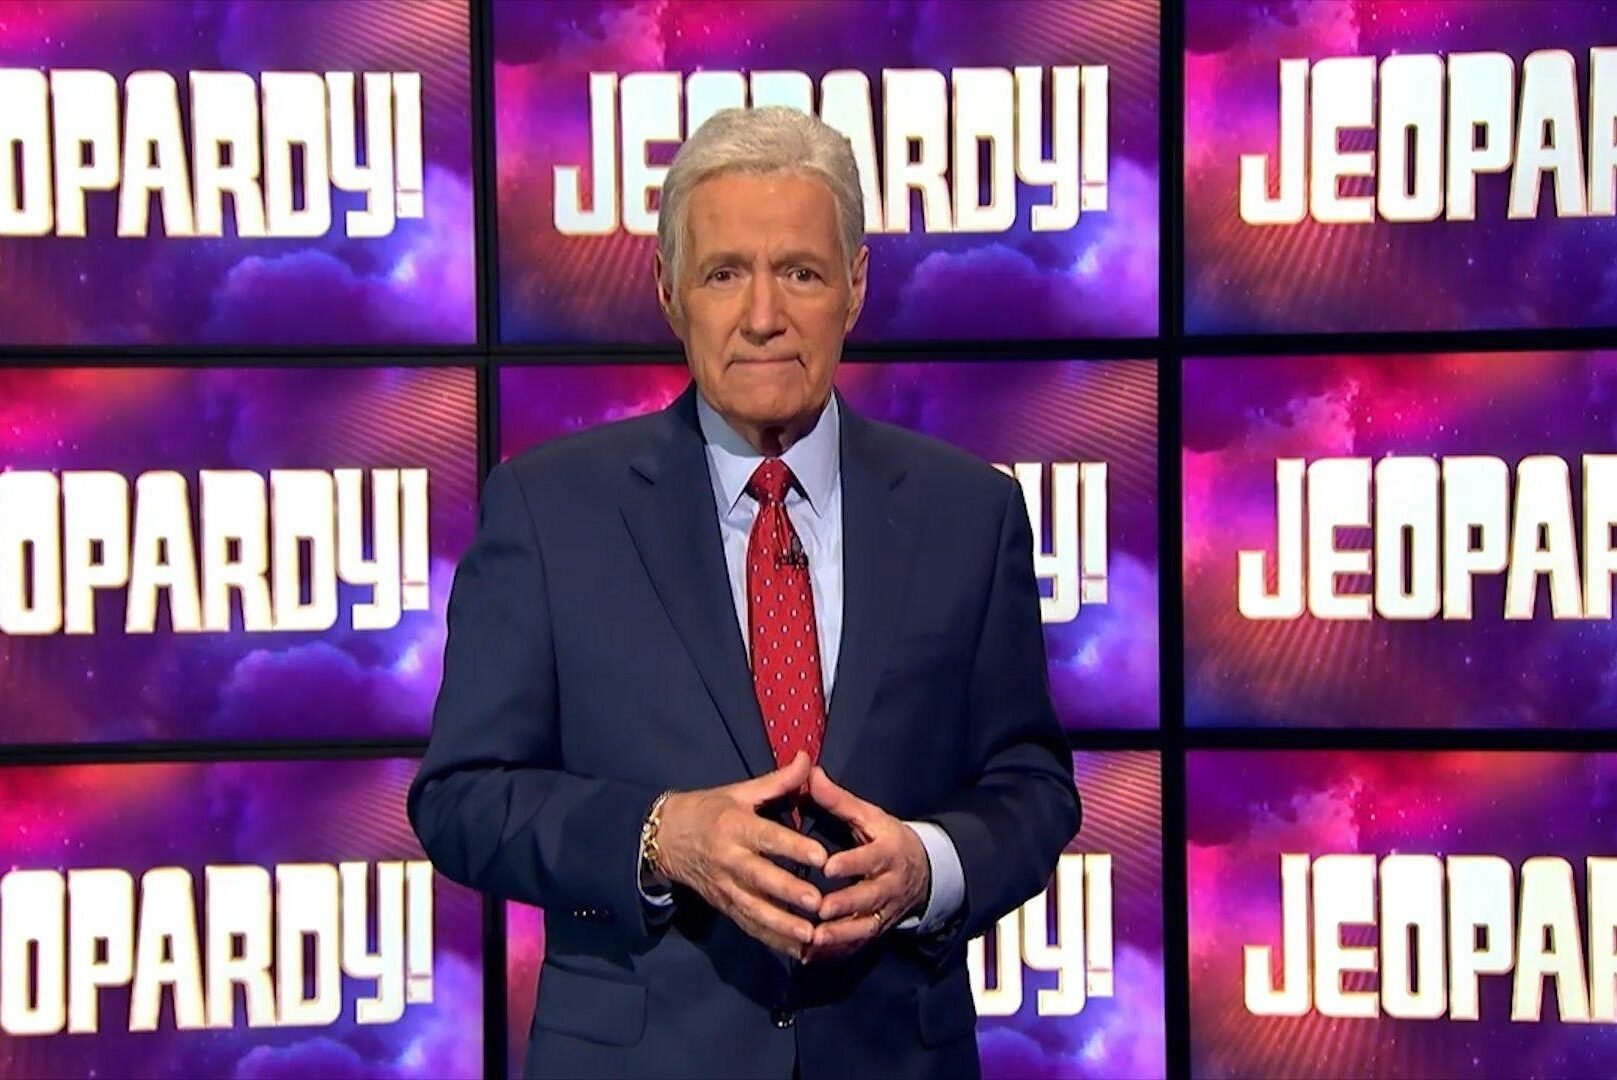 Jeopardy Meltdown: Complete Timeline Of How The Show Destroyed Itself - cover